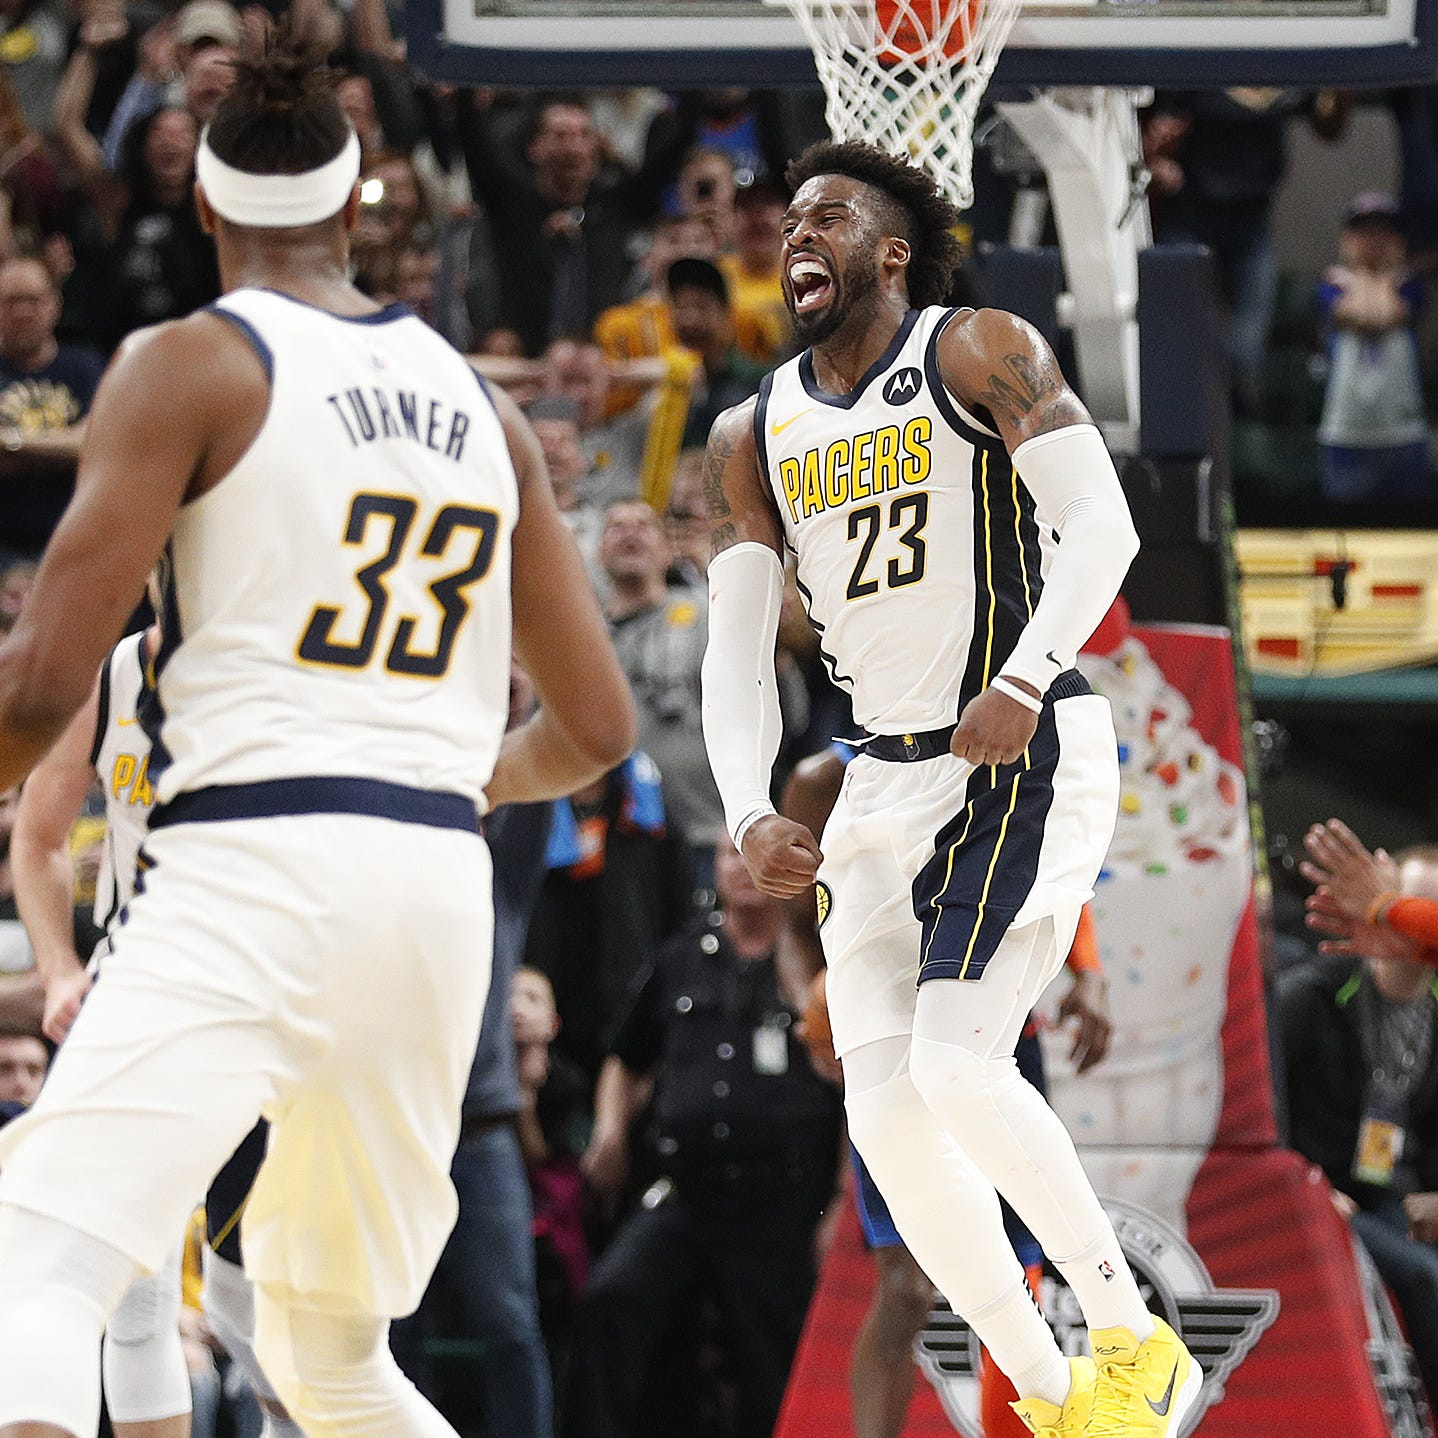 After spurning the Thunder, Wesley Matthews beats them for the Indiana Pacers